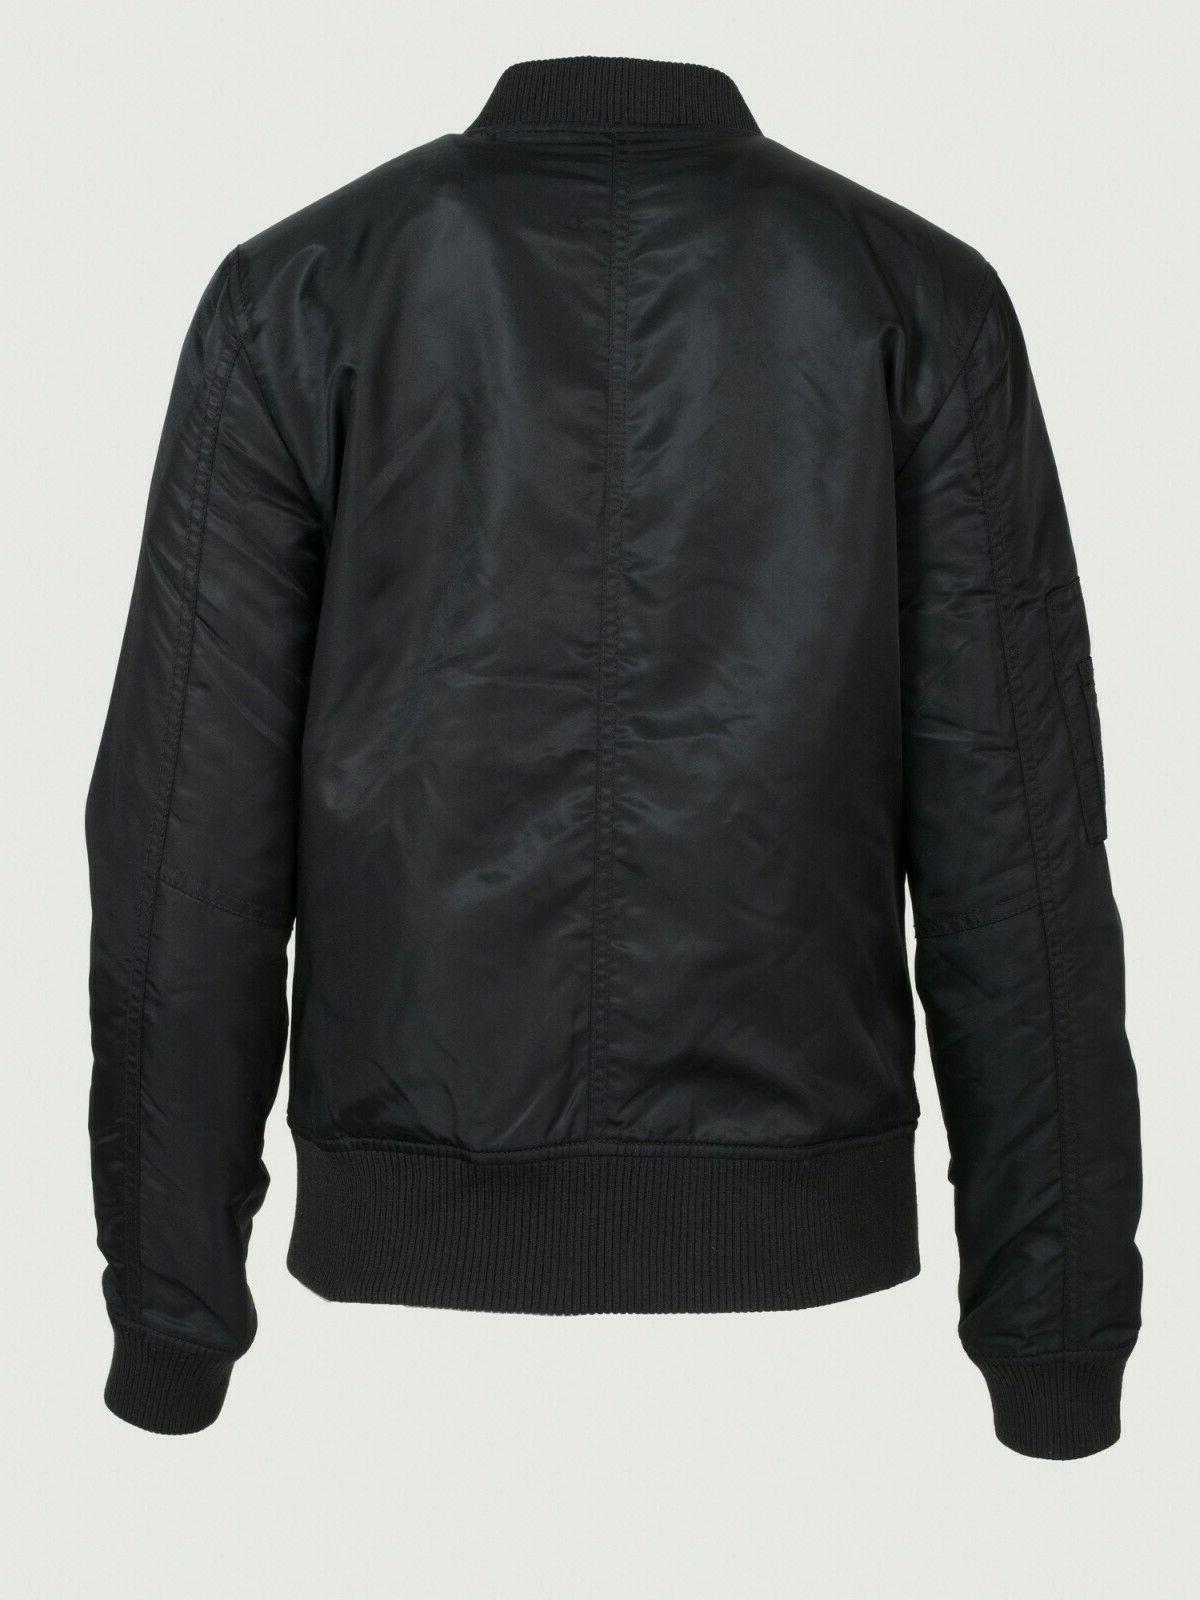 New Dillards black water bomber jacket XS